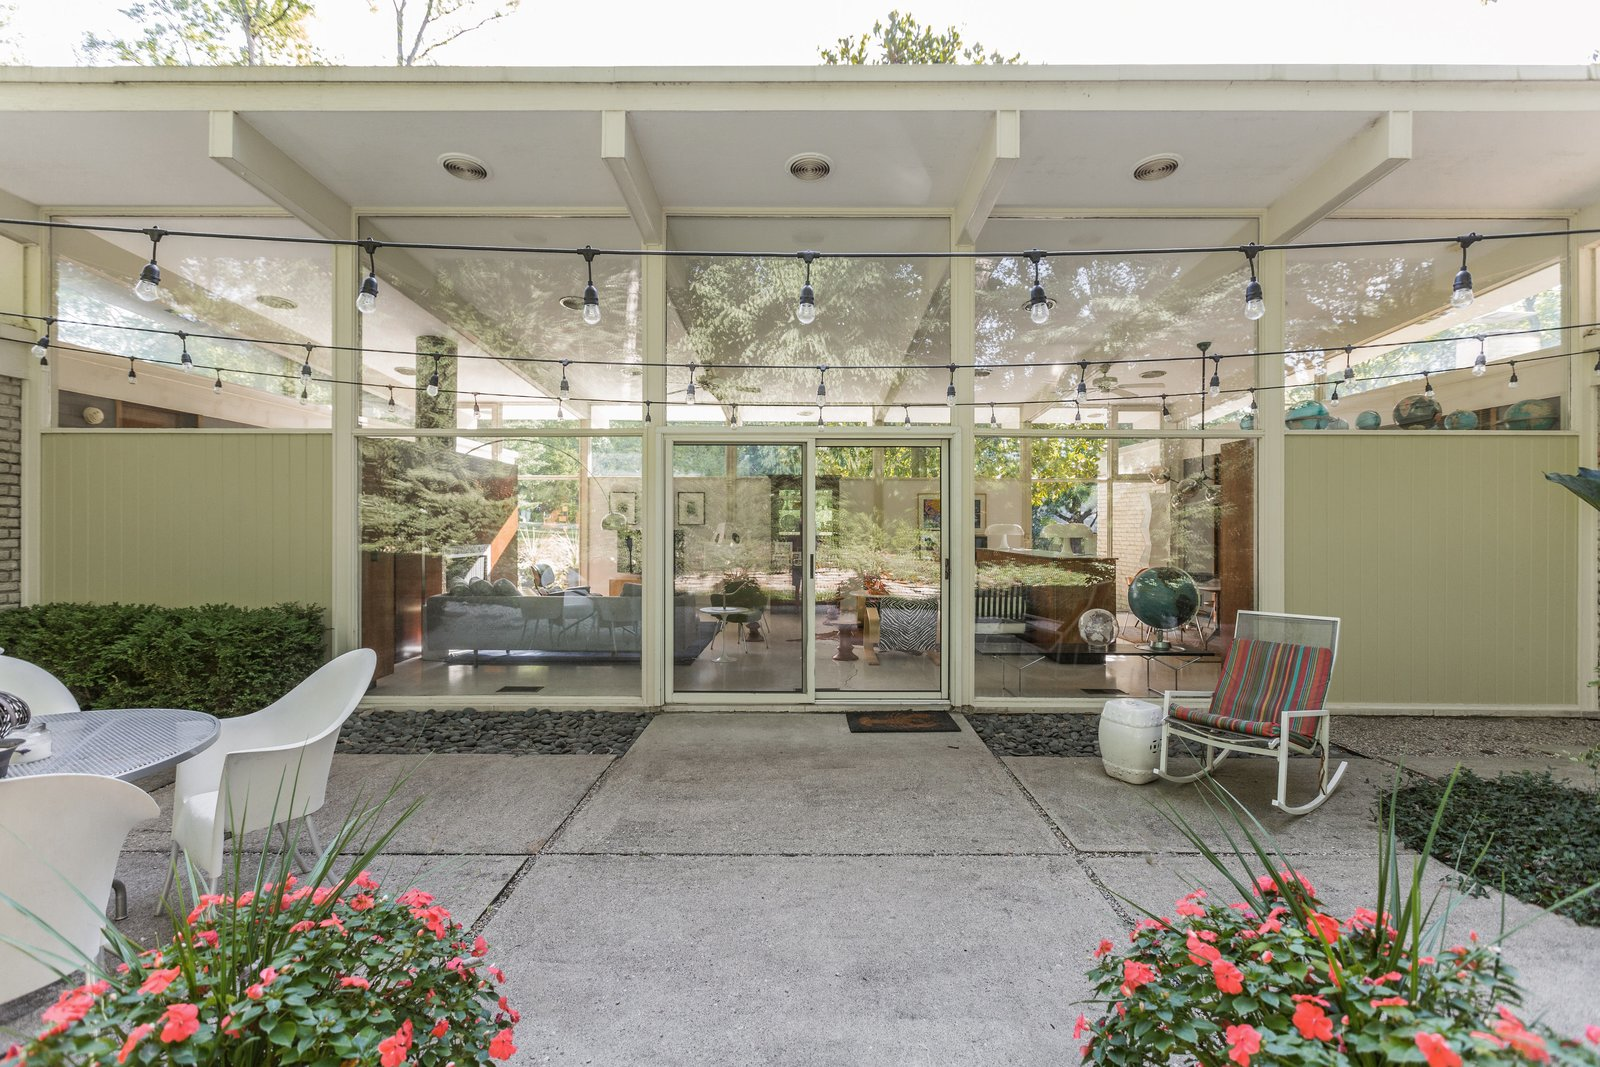 Outdoor, Pavers Patio, Porch, Deck, Raised Planters, Walkways, Concrete Patio, Porch, Deck, Planters Patio, Porch, Deck, Hanging Lighting, Gardens, Hardscapes, Flowers, and Back Yard  Photo 10 of 10 in A Midcentury Gem by a Famed Indiana Architect Offered at $450K